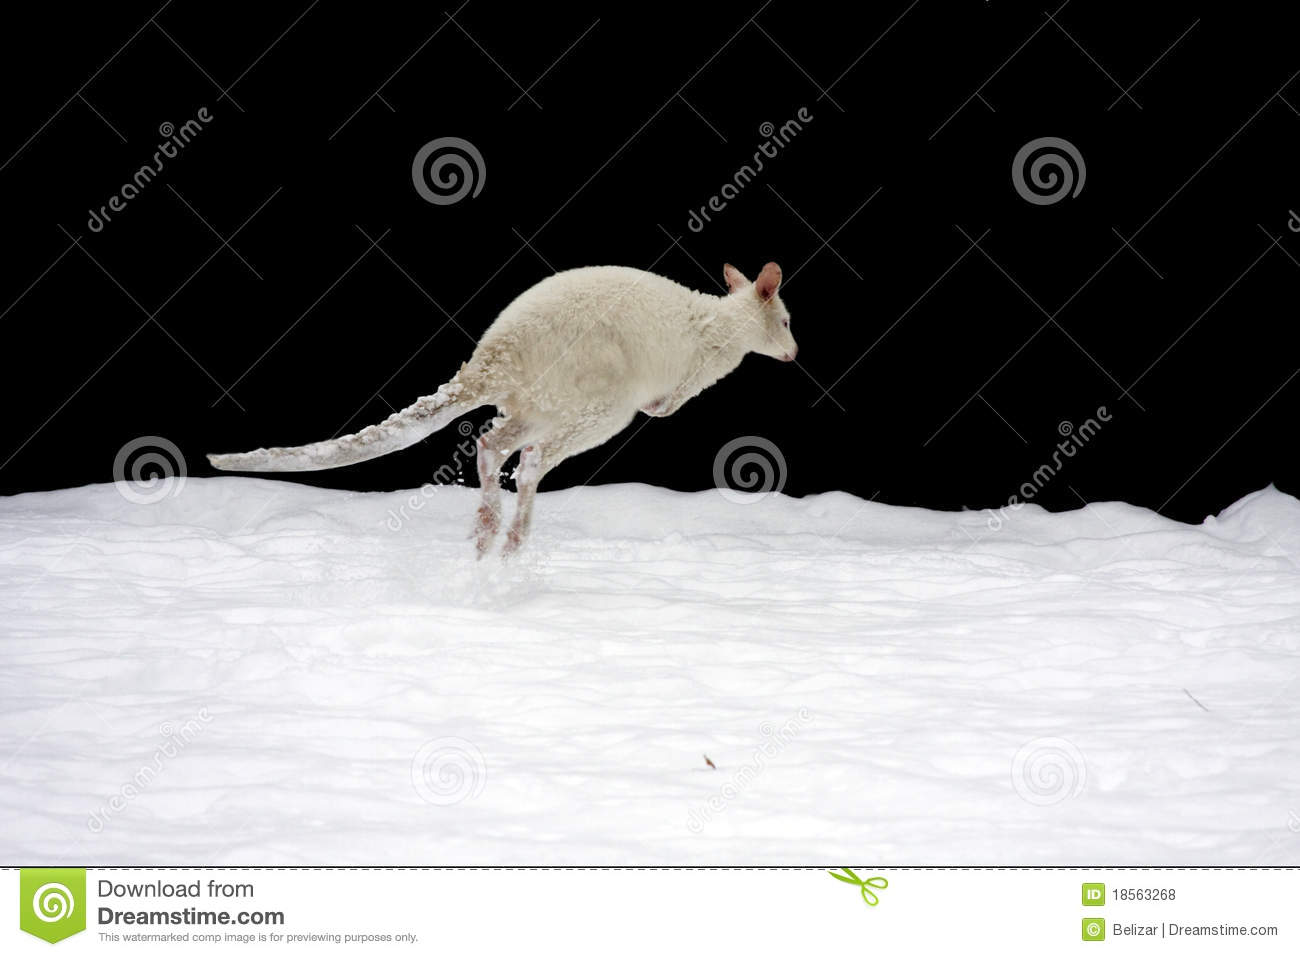 A white Bennett wallaby (Macropus rufogriseus) in